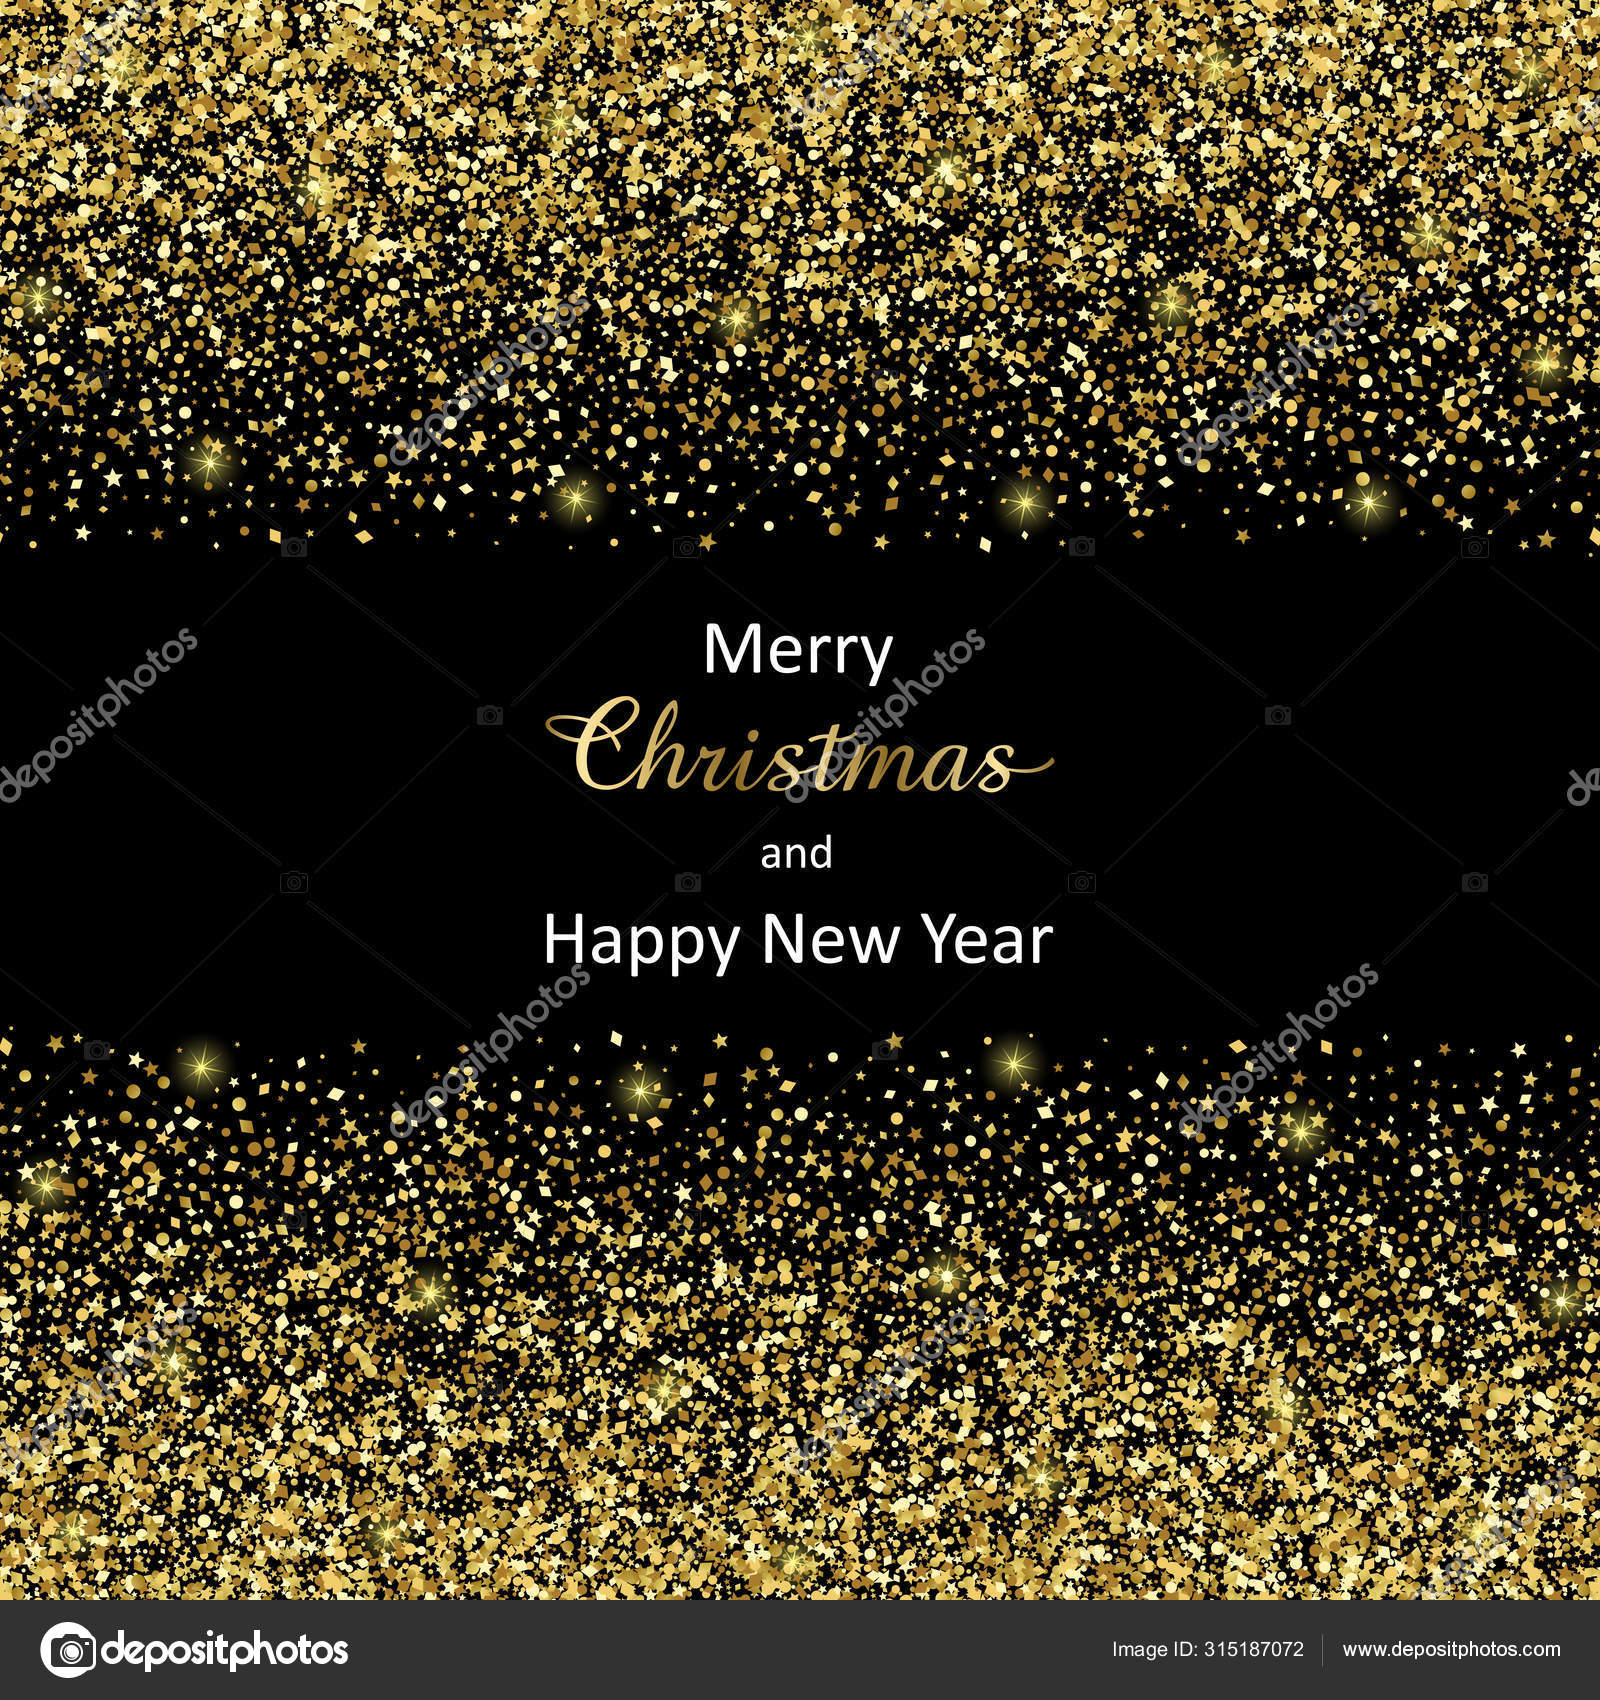 Merry Christmas And Happy New Year 2020 Vector Luxury Greeting Card Stock Vector C Kronalux 315187072